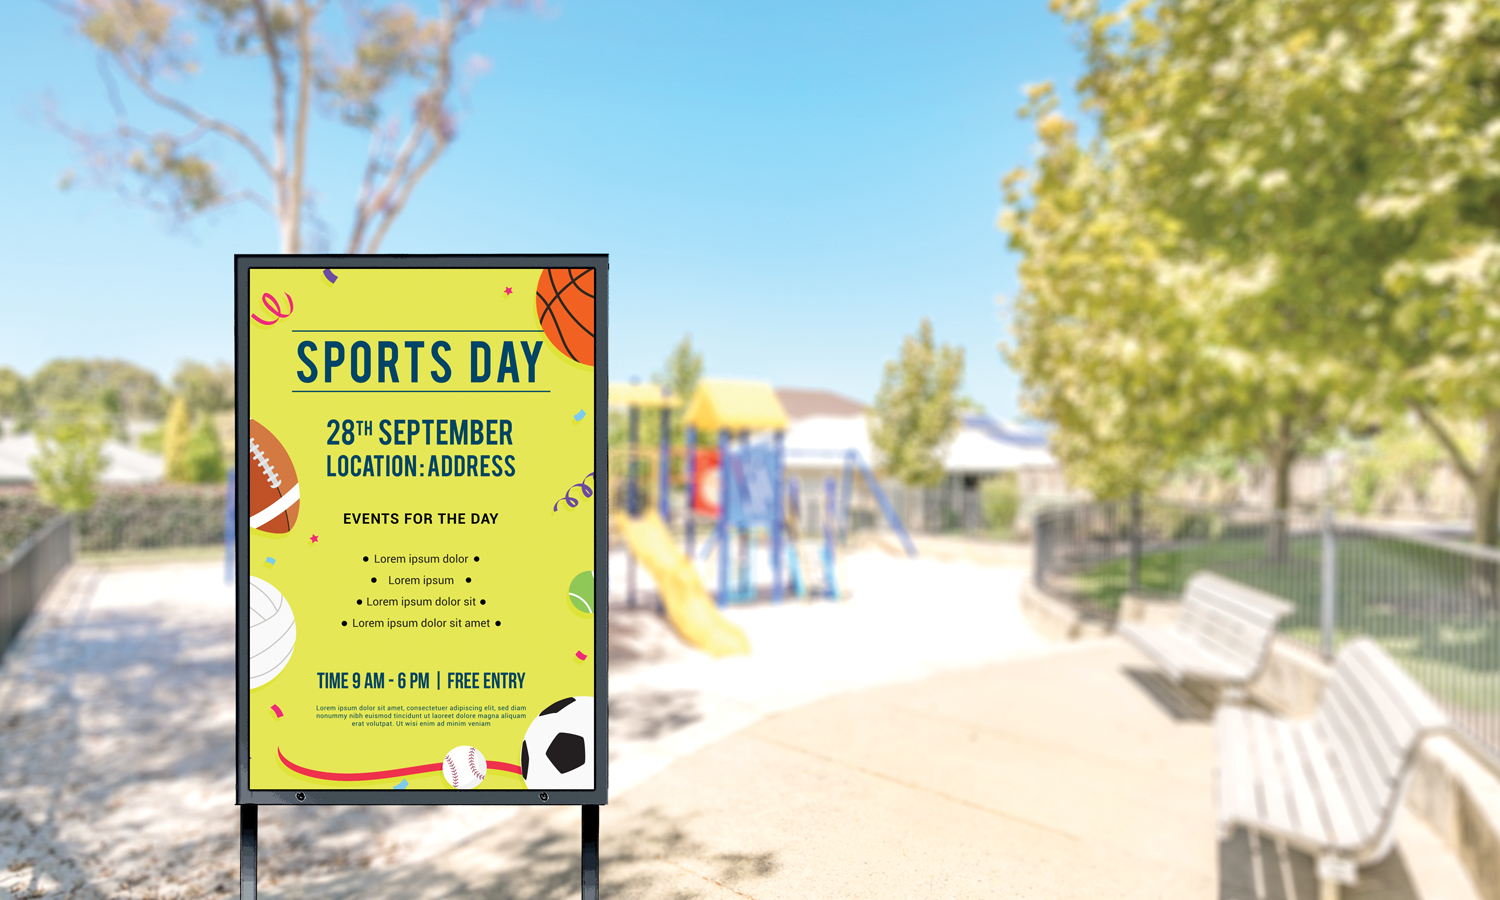 CIVIQ notice board with details about the sports day event that will happen on 28th of September at 9 am to 6 pm in the playground